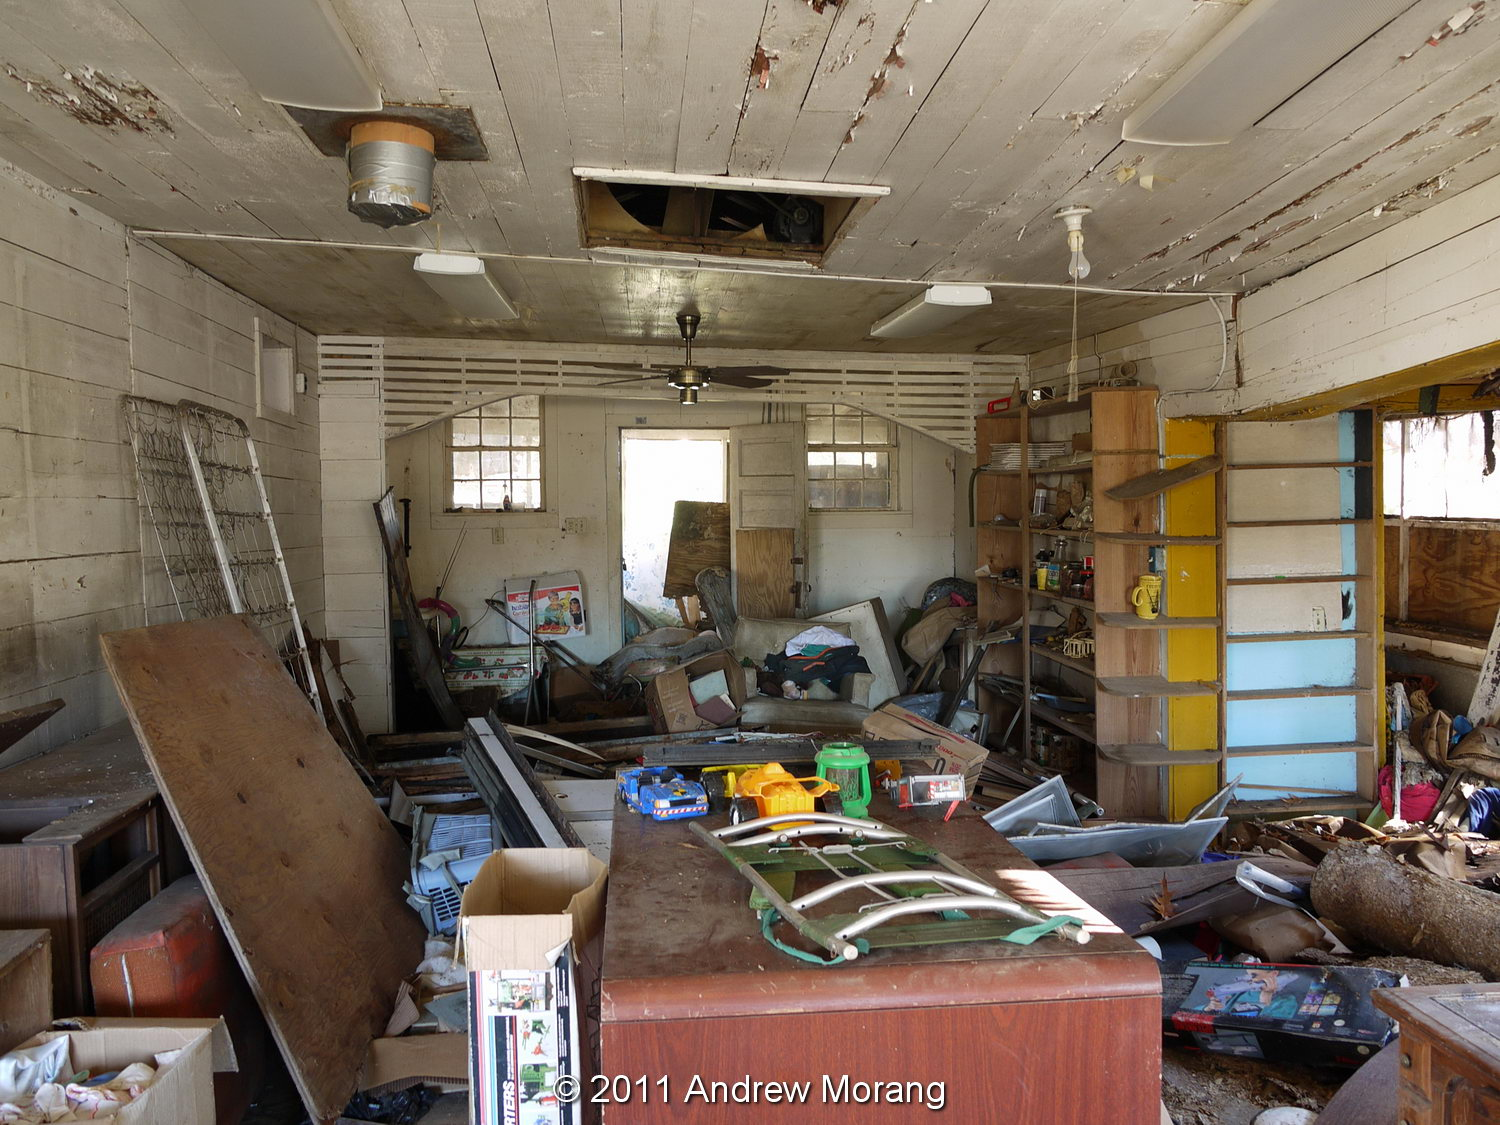 The Roof On The Main Building Is Still Intact, And It Looks Like The Owners  Have Been Storing Miscellaneous Junk For Awhile. Notice The Wood Boards  Forming ...